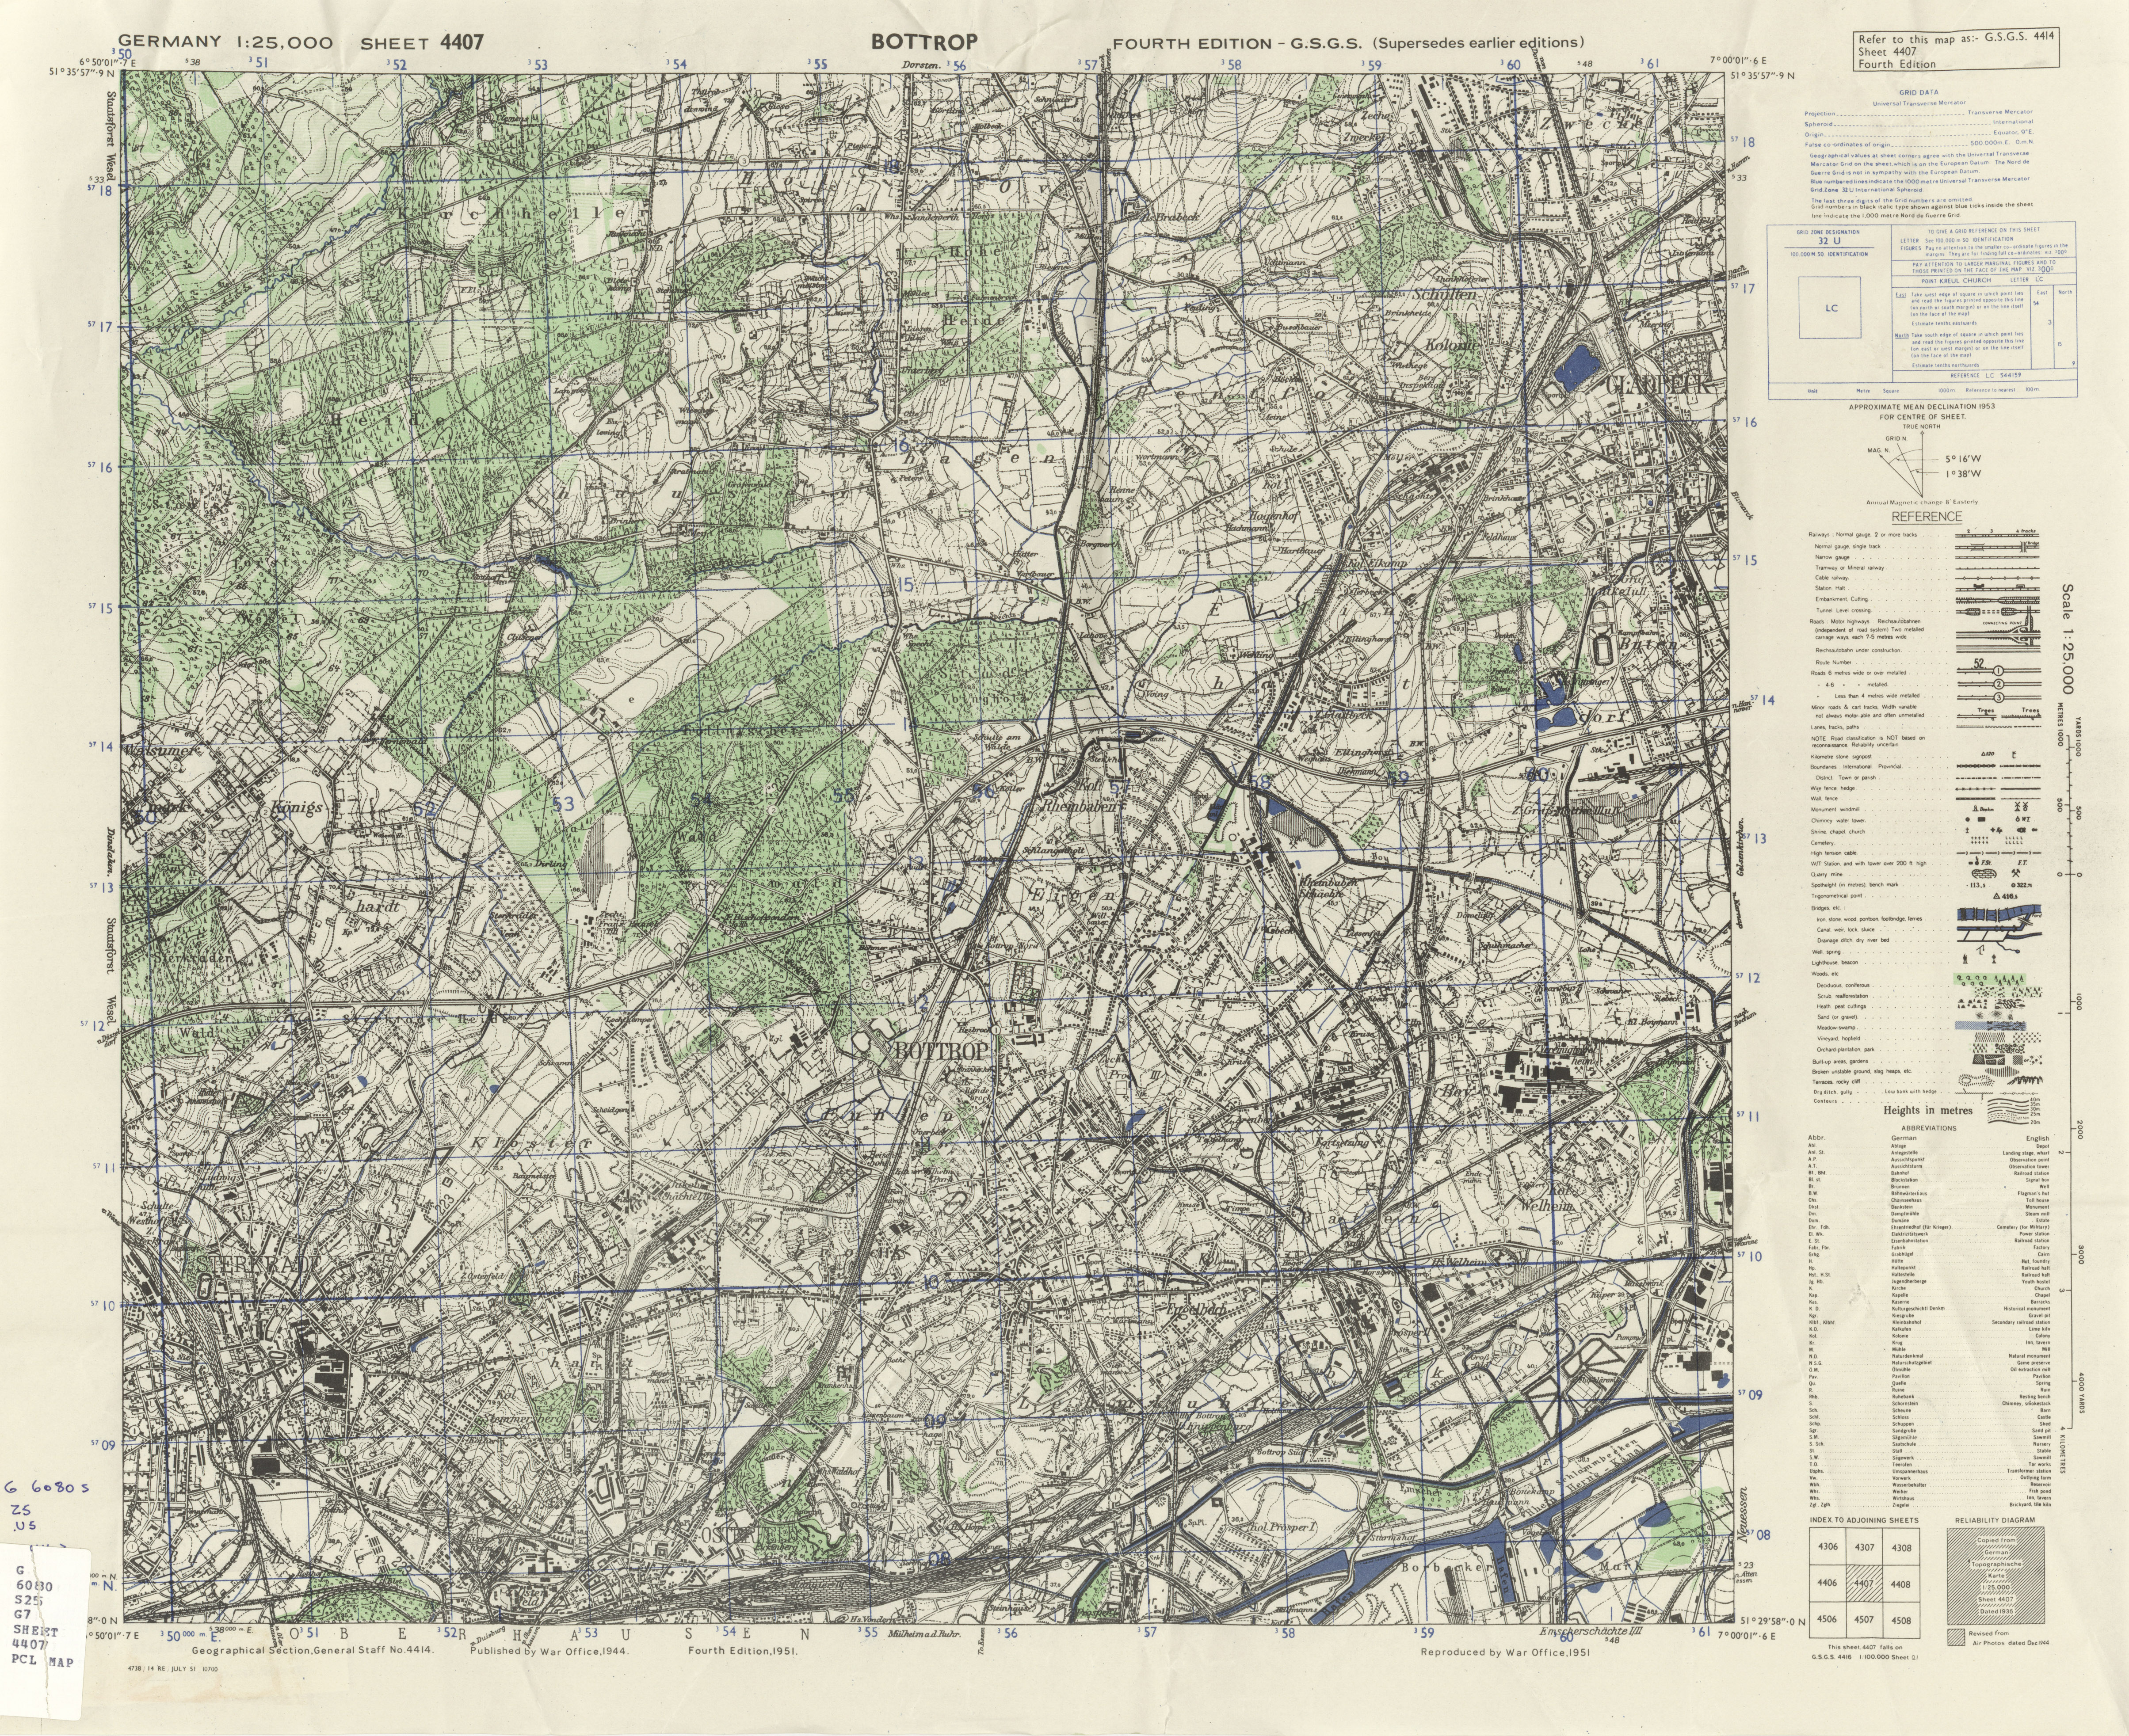 Germany AMS Topographic Maps PerryCastañeda Map Collection UT - Bottrop map